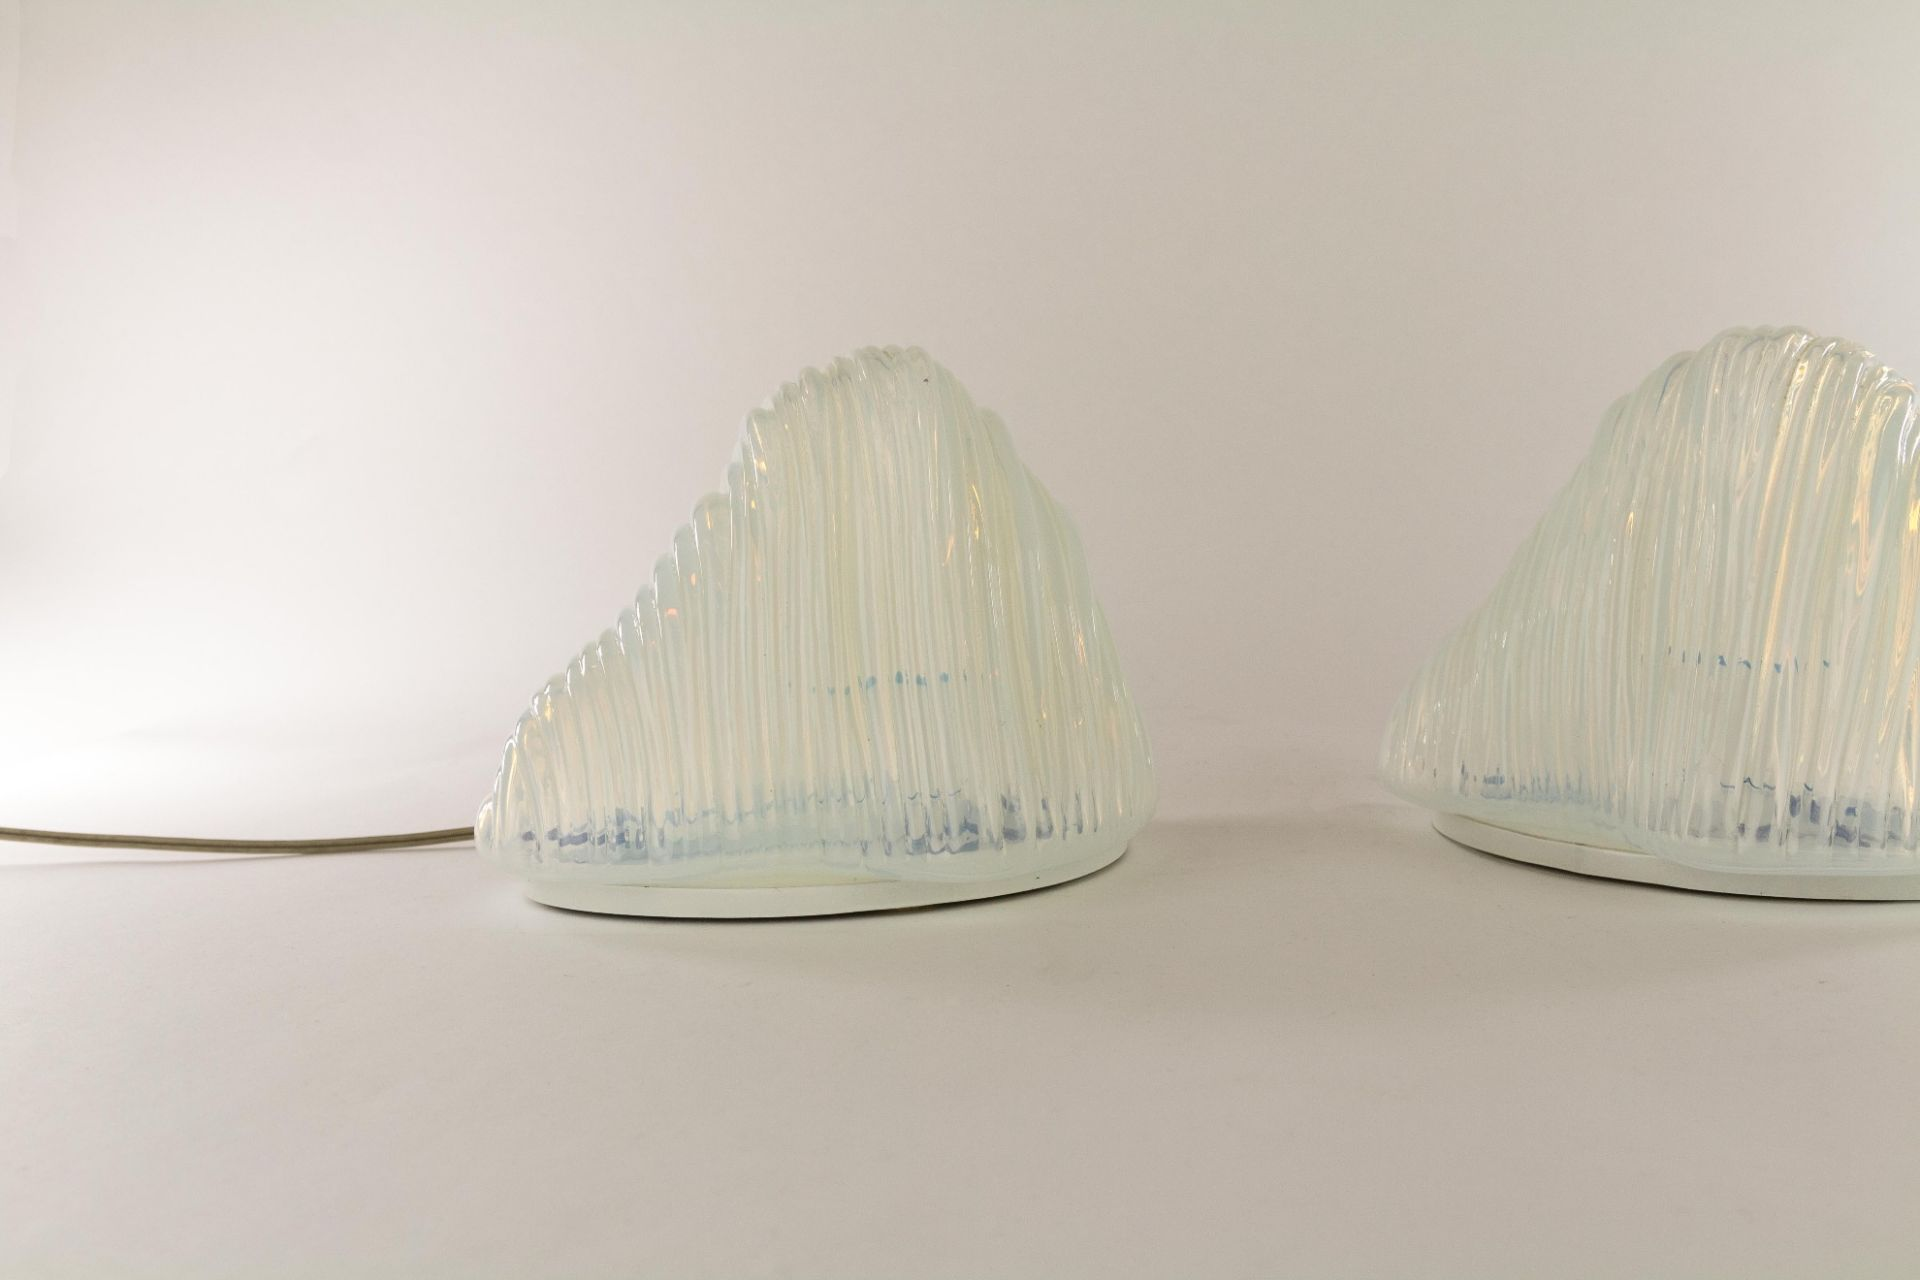 Pair of Iceberg Table lamps by Carlo Nason for A.V. Mazzega, 1960s